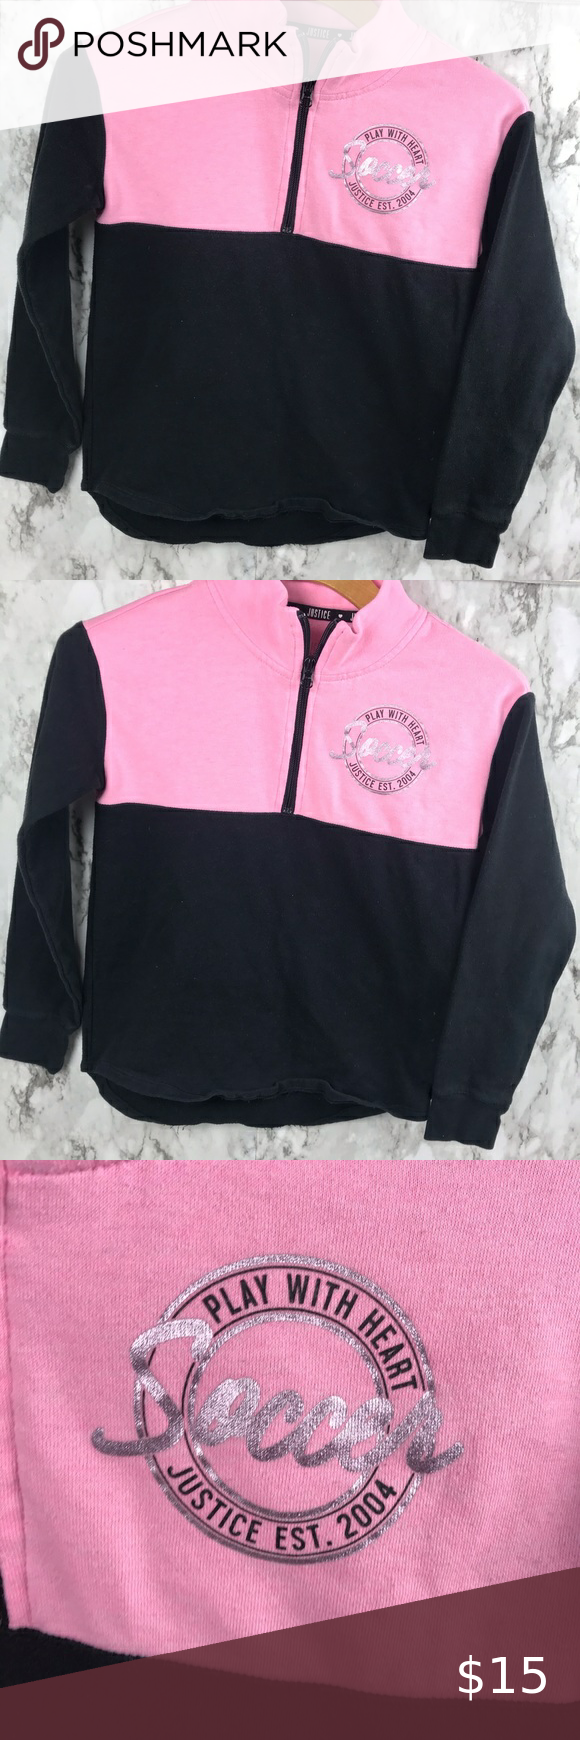 """Justice Active Soccer Fleece Top Size Youth 12 Size 12 Pit to pit 16"""" Length is 23"""" Some normal Fade #010 Justice Shirts & Tops Sweatshirts & Hoodies"""